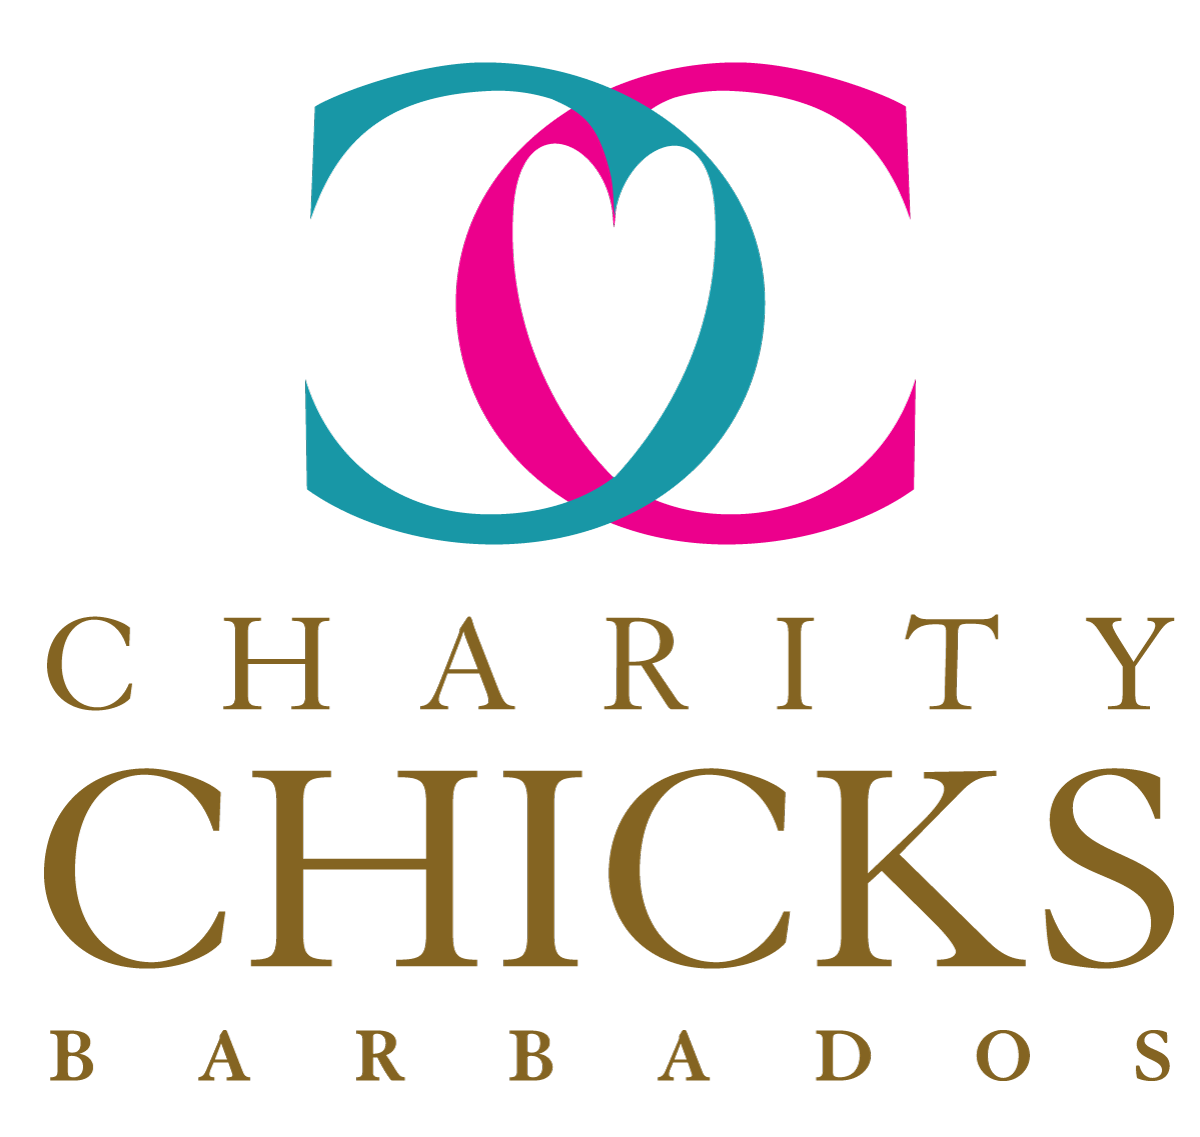 Charity-Chicks-Bdos-LOGO